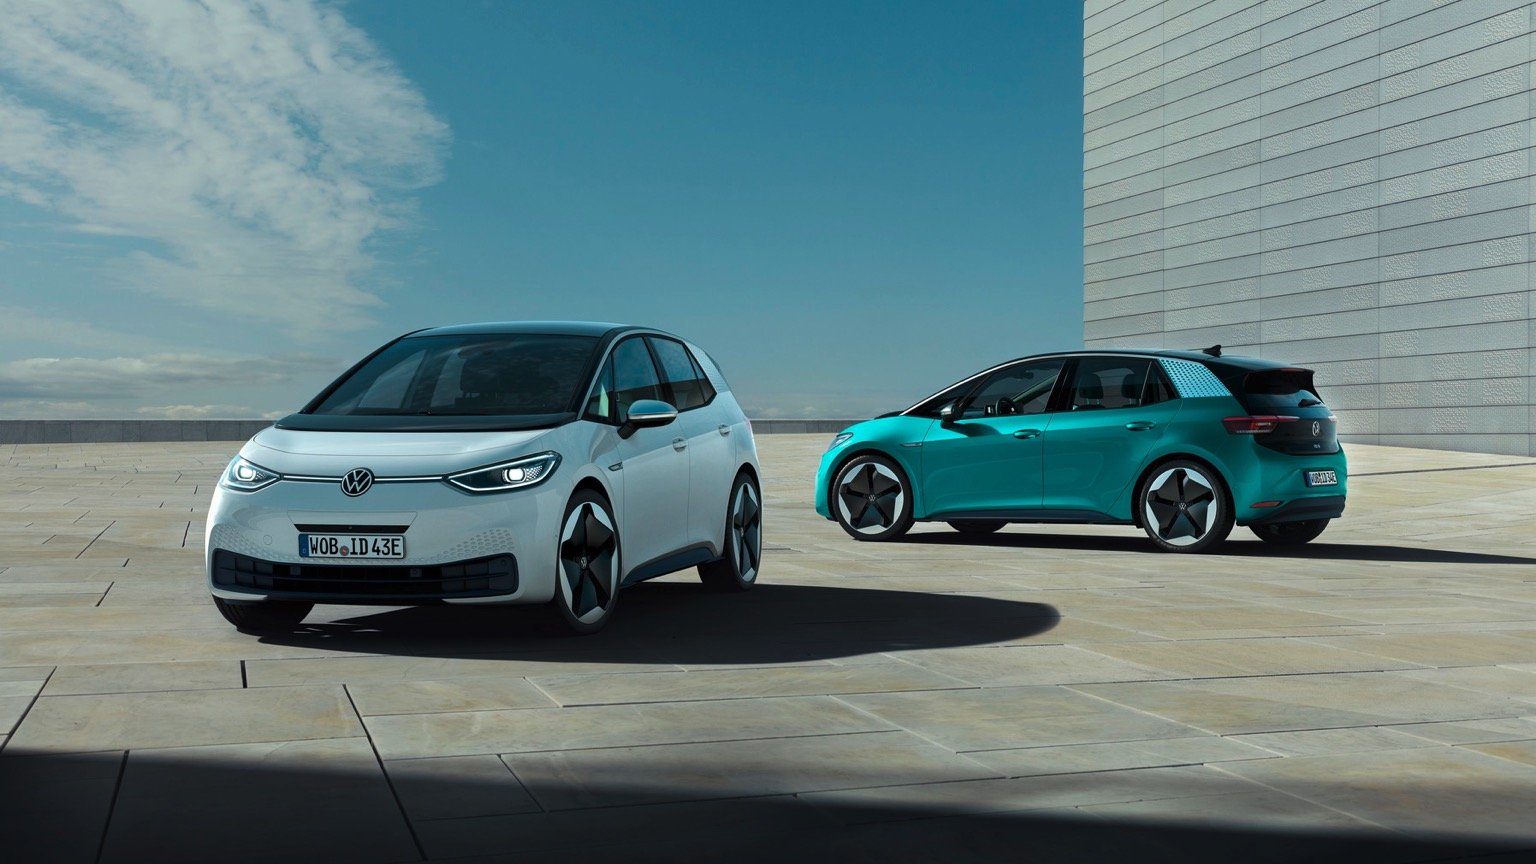 Volkswagen Sa Joins Electric Car Race With E-golf Pilot Project photo